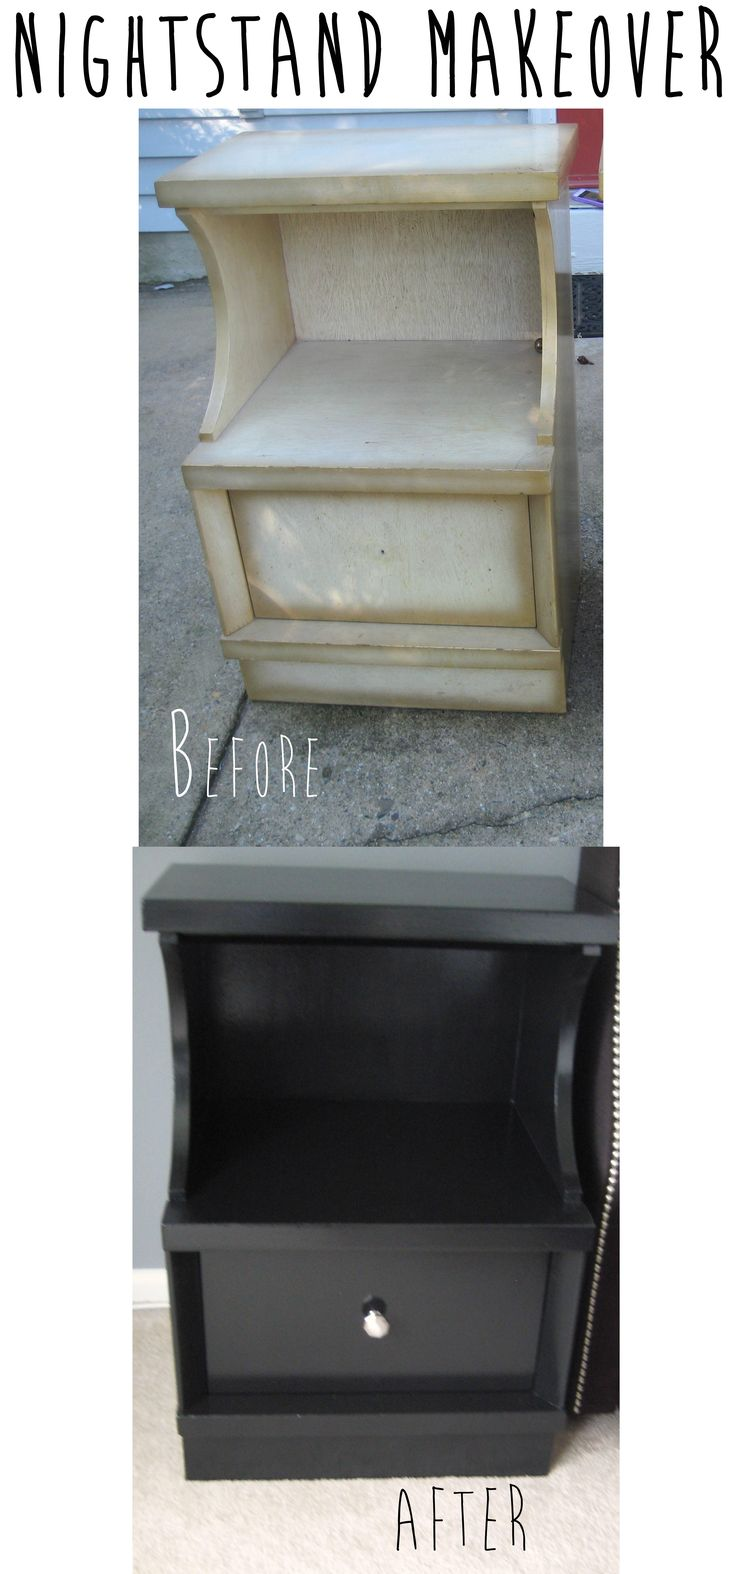 17 Best Images About Nightstand Plans On Pinterest: 17 Best Images About Nightstand & End Table Makeovers On